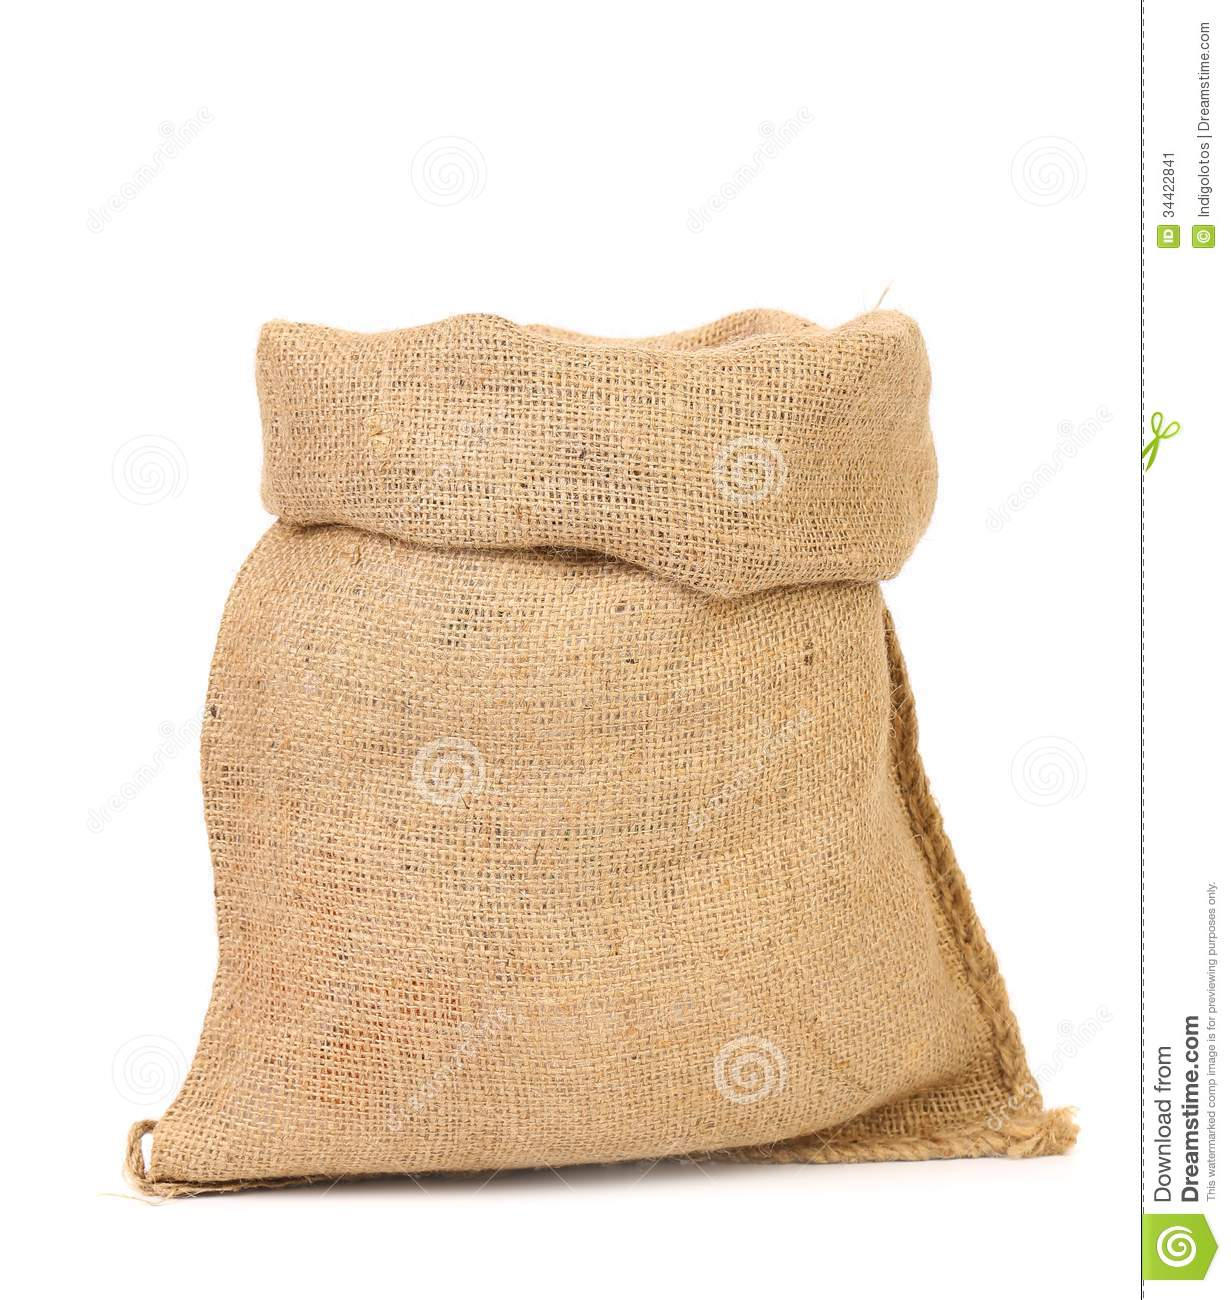 Burlap Sack Isolated On White Background Stock Image ...